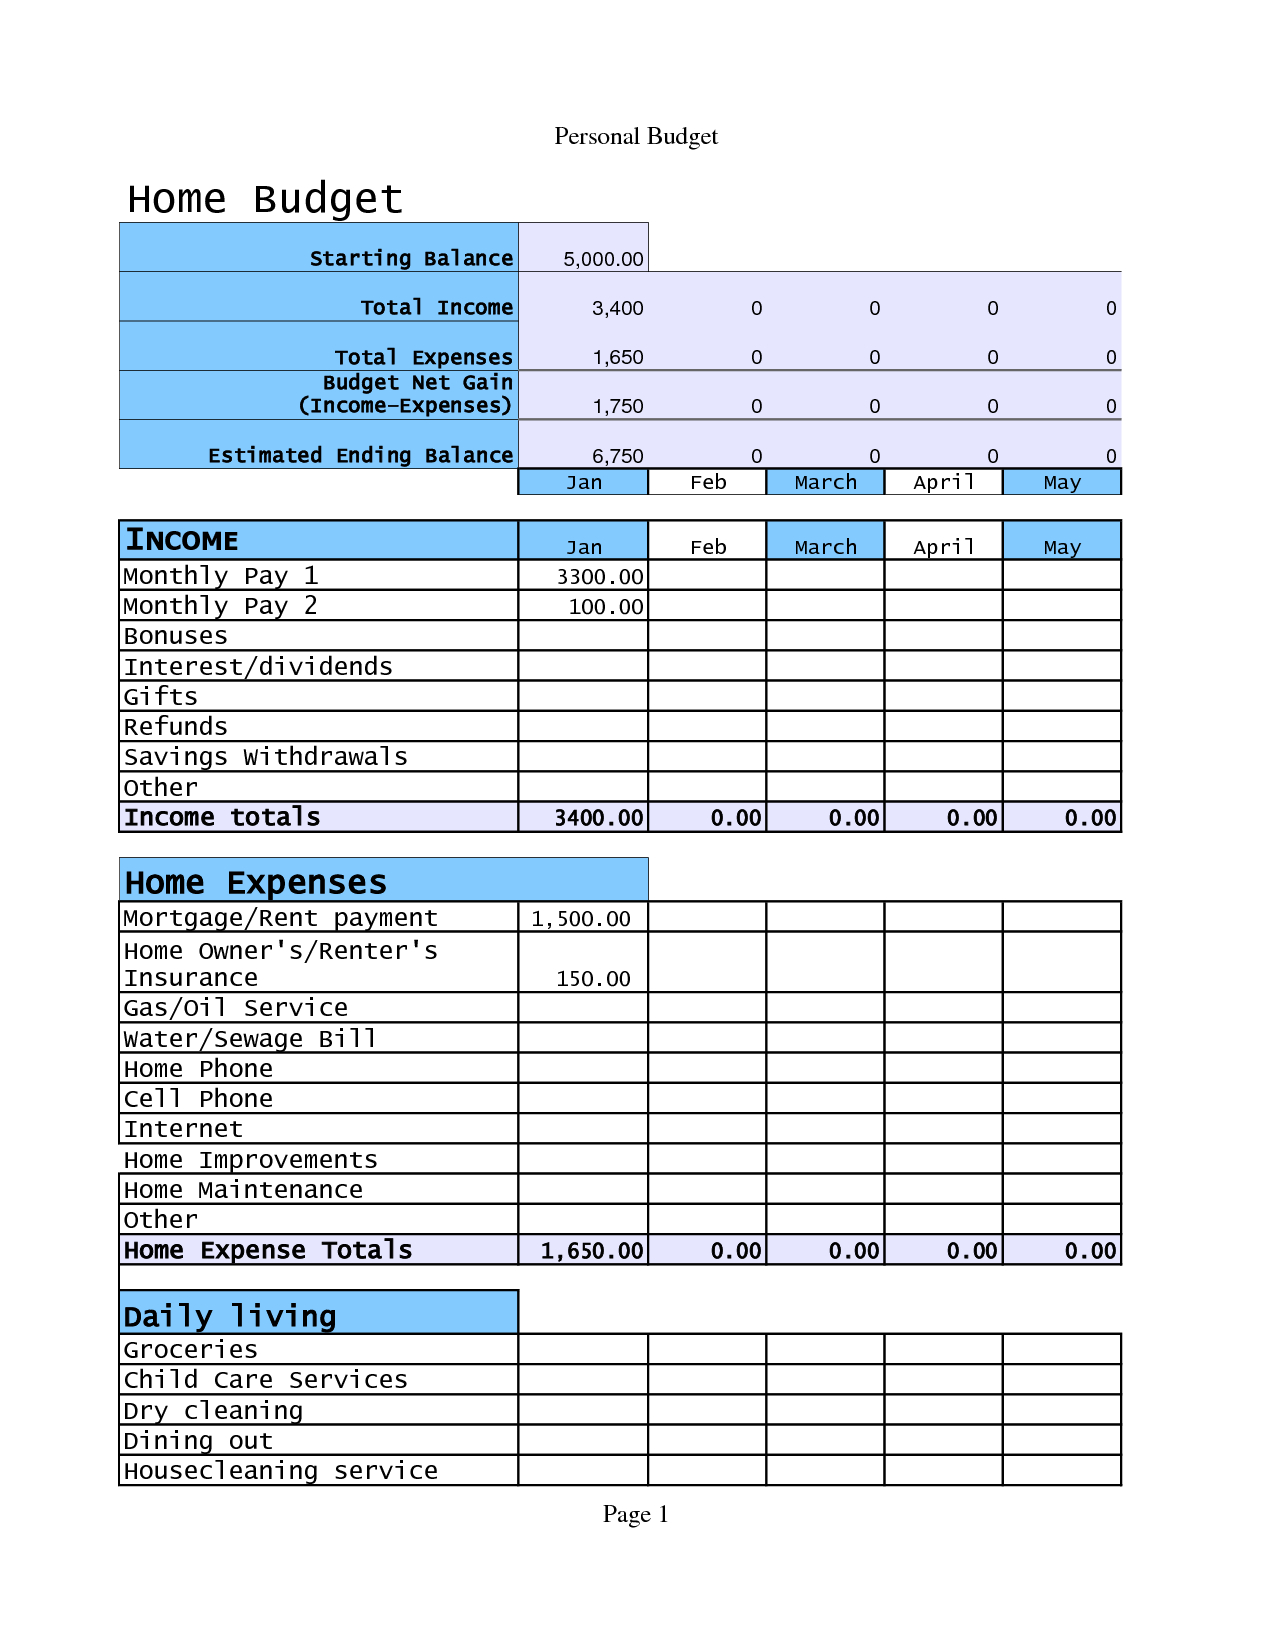 Sample Home Budgetpreadsheet  Hycmtgr4 Personal